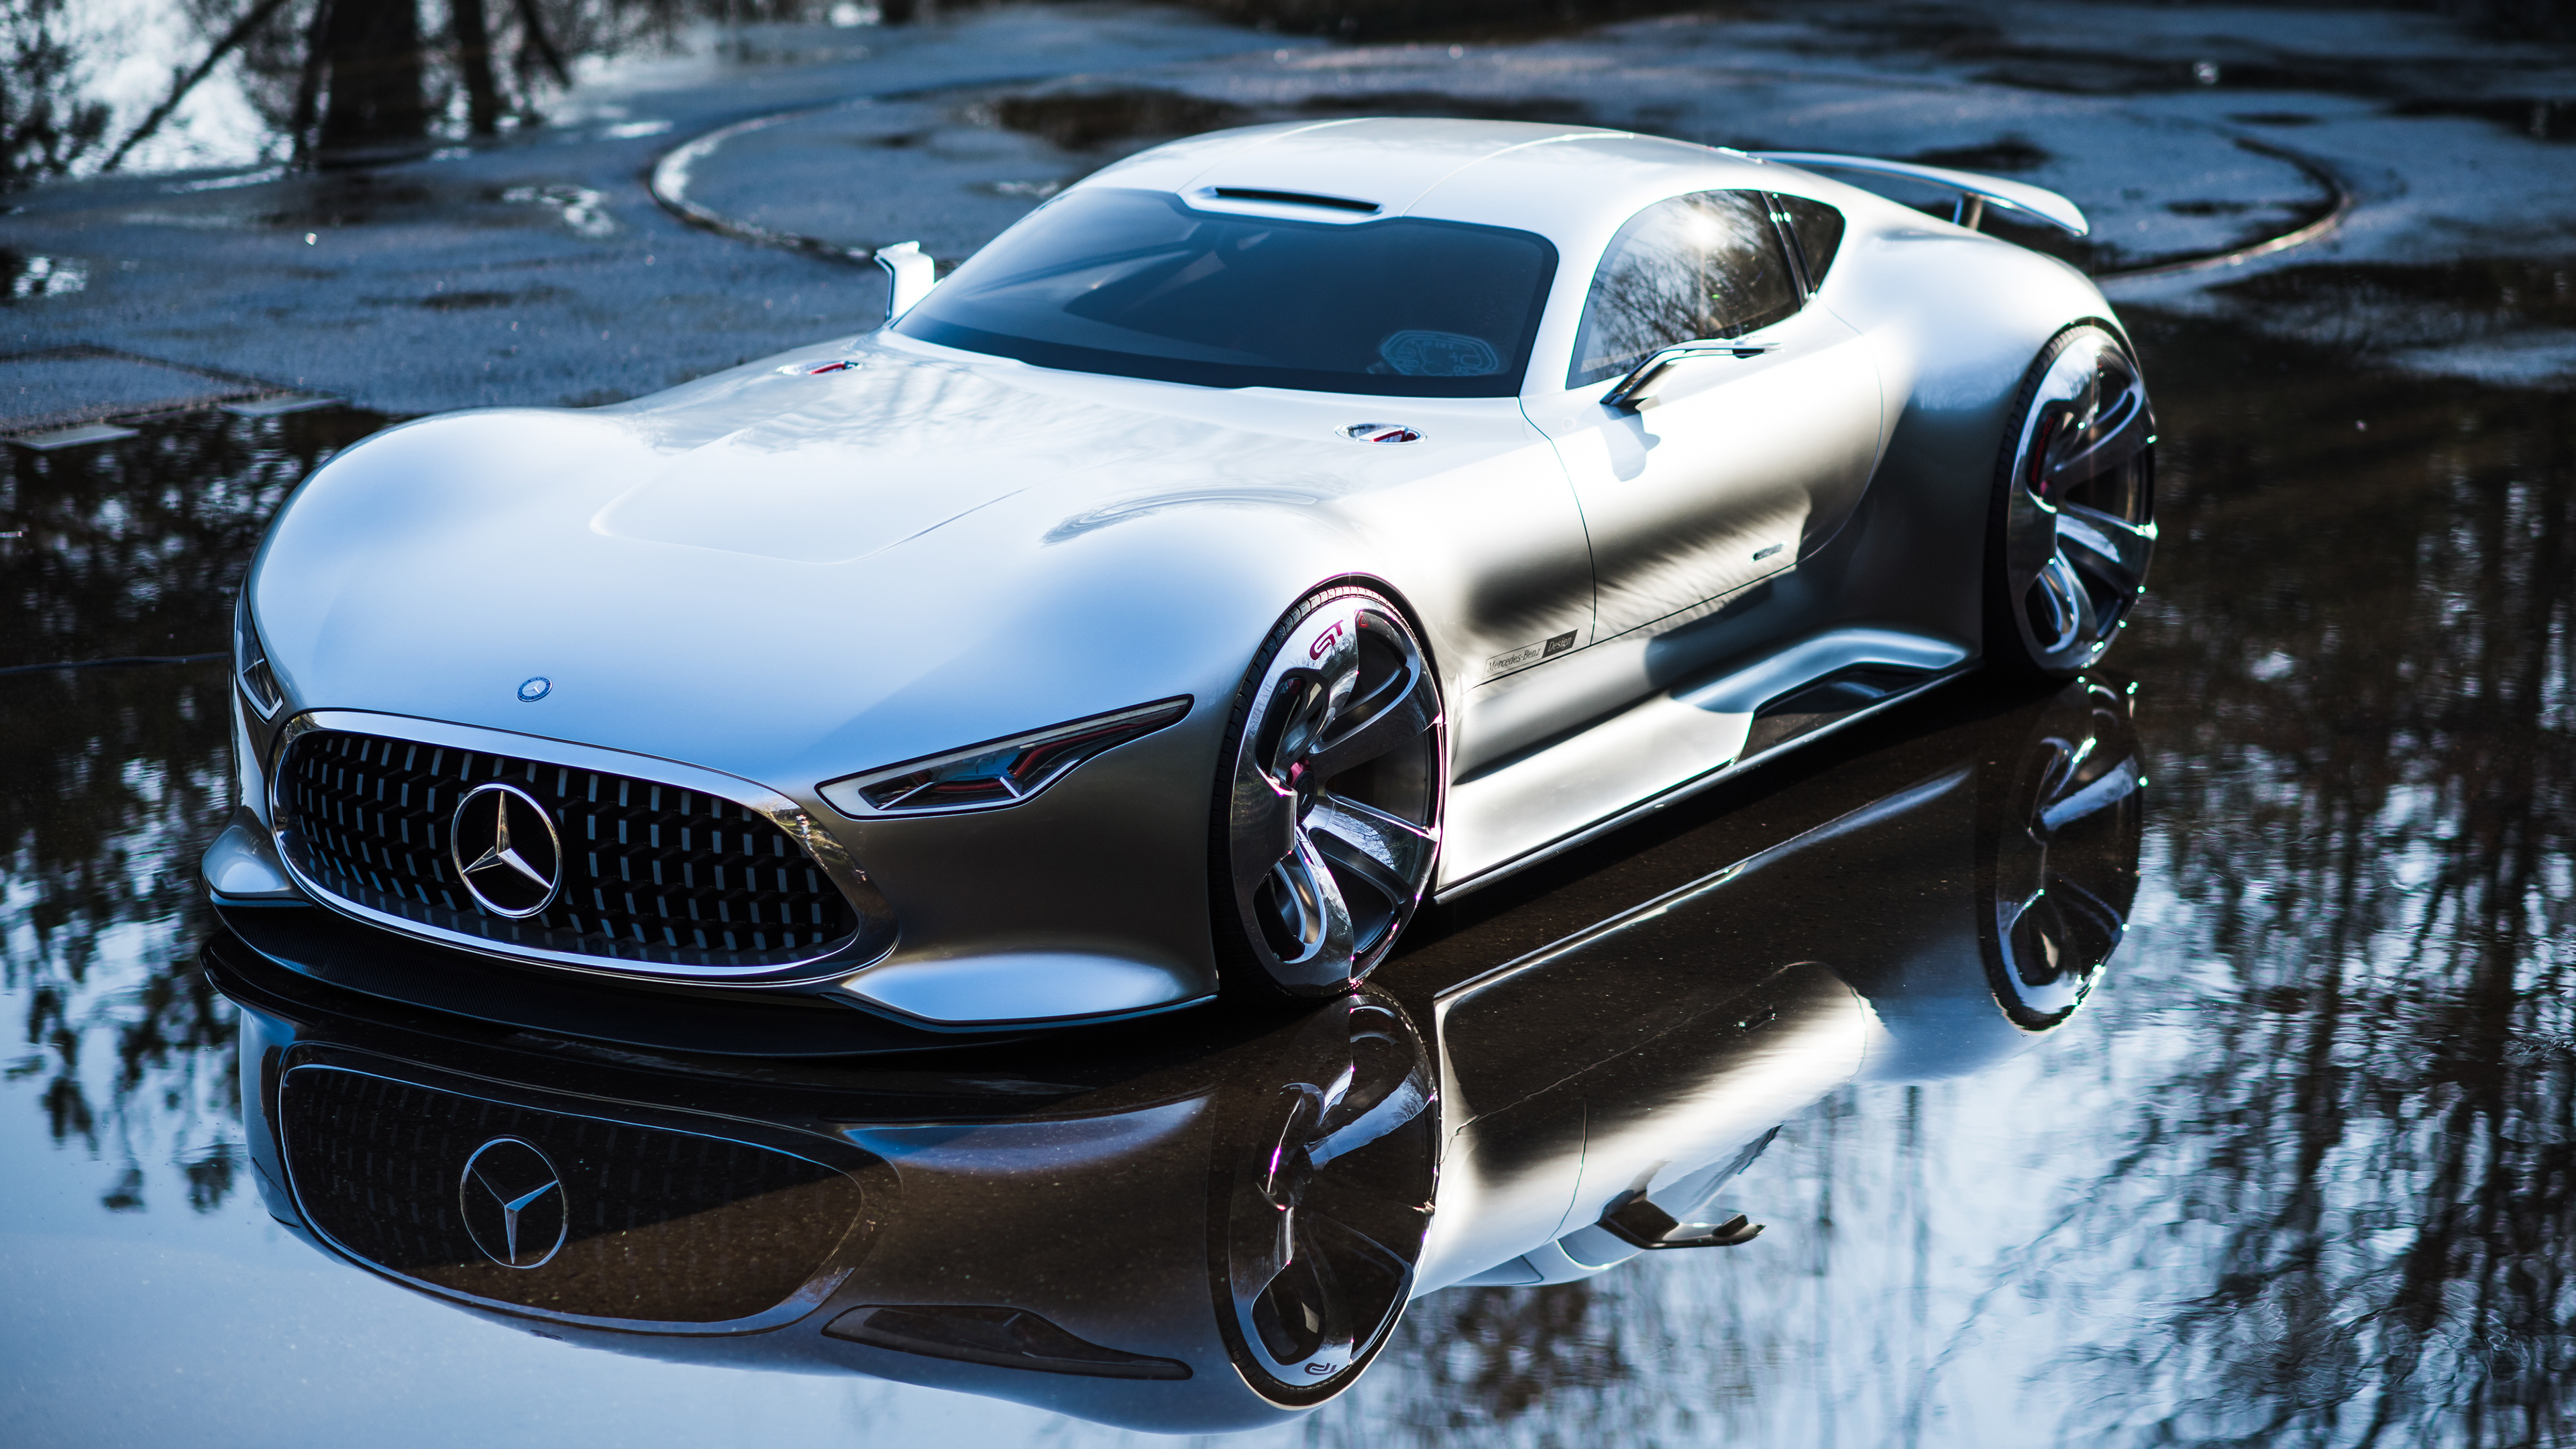 mercedes benz amg vision gran turismo 4k 1546361550 - Mercedes Benz AMG Vision Gran Turismo 4k - mercedes benz wallpapers, hd-wallpapers, cars wallpapers, behance wallpapers, 4k-wallpapers